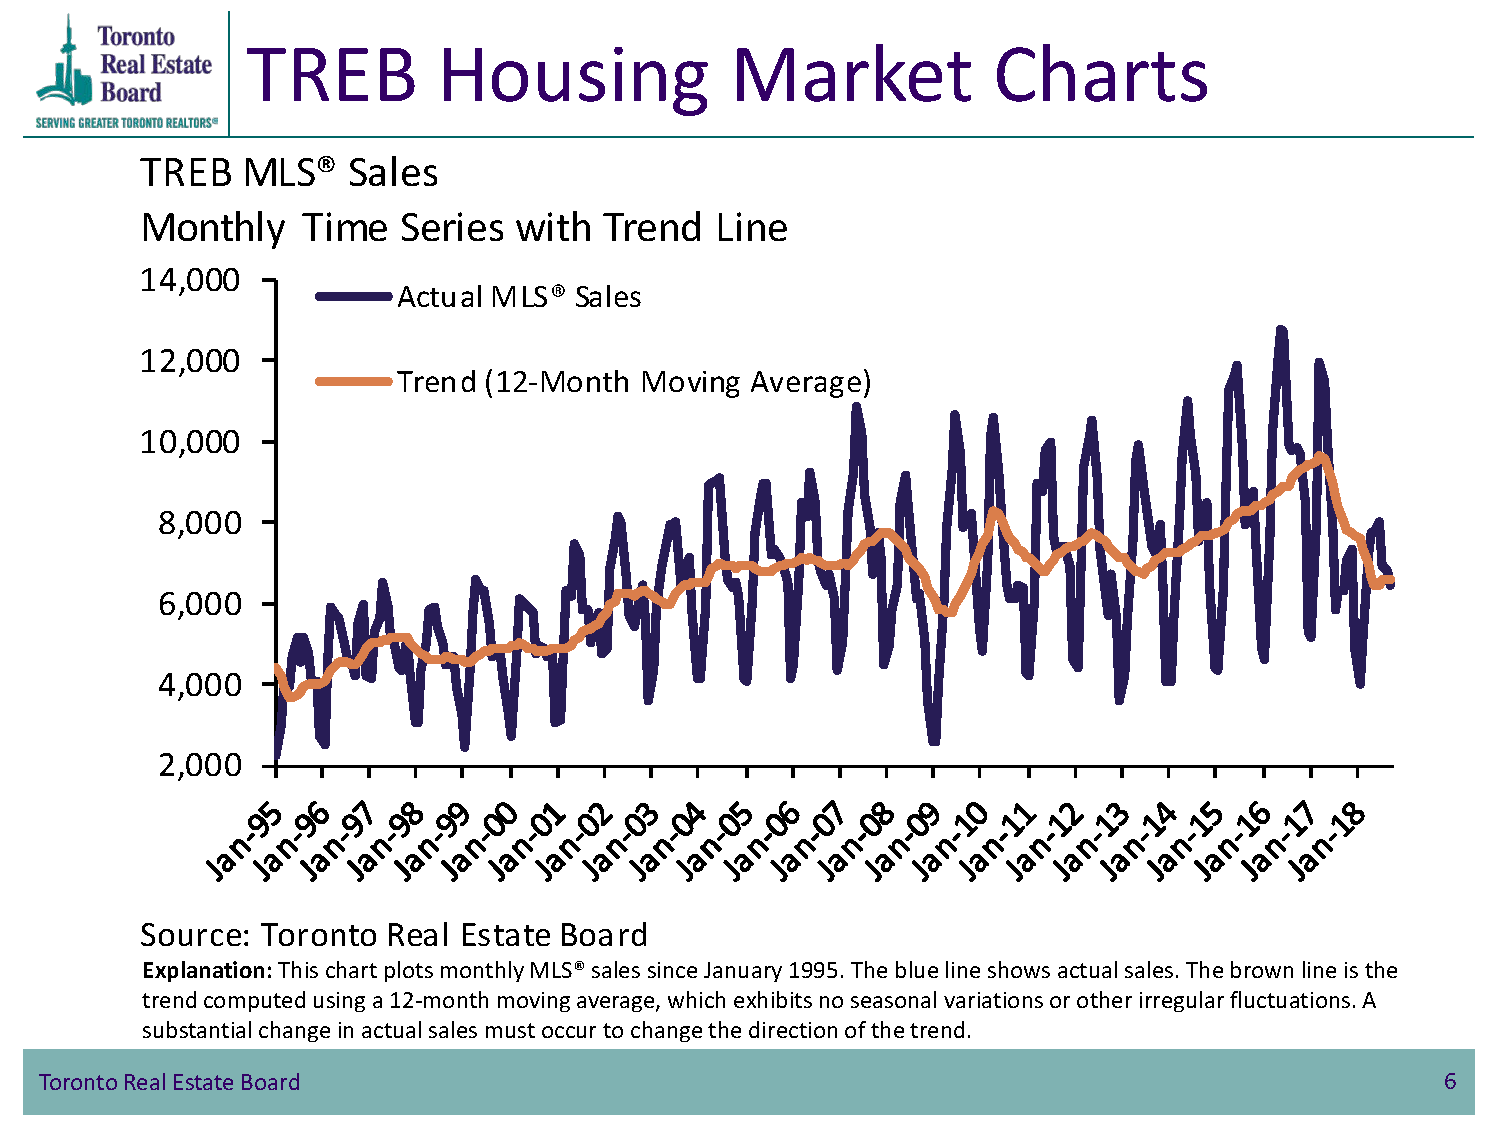 TREB Housing Market Charts - Monthly Time Series with Trend Line